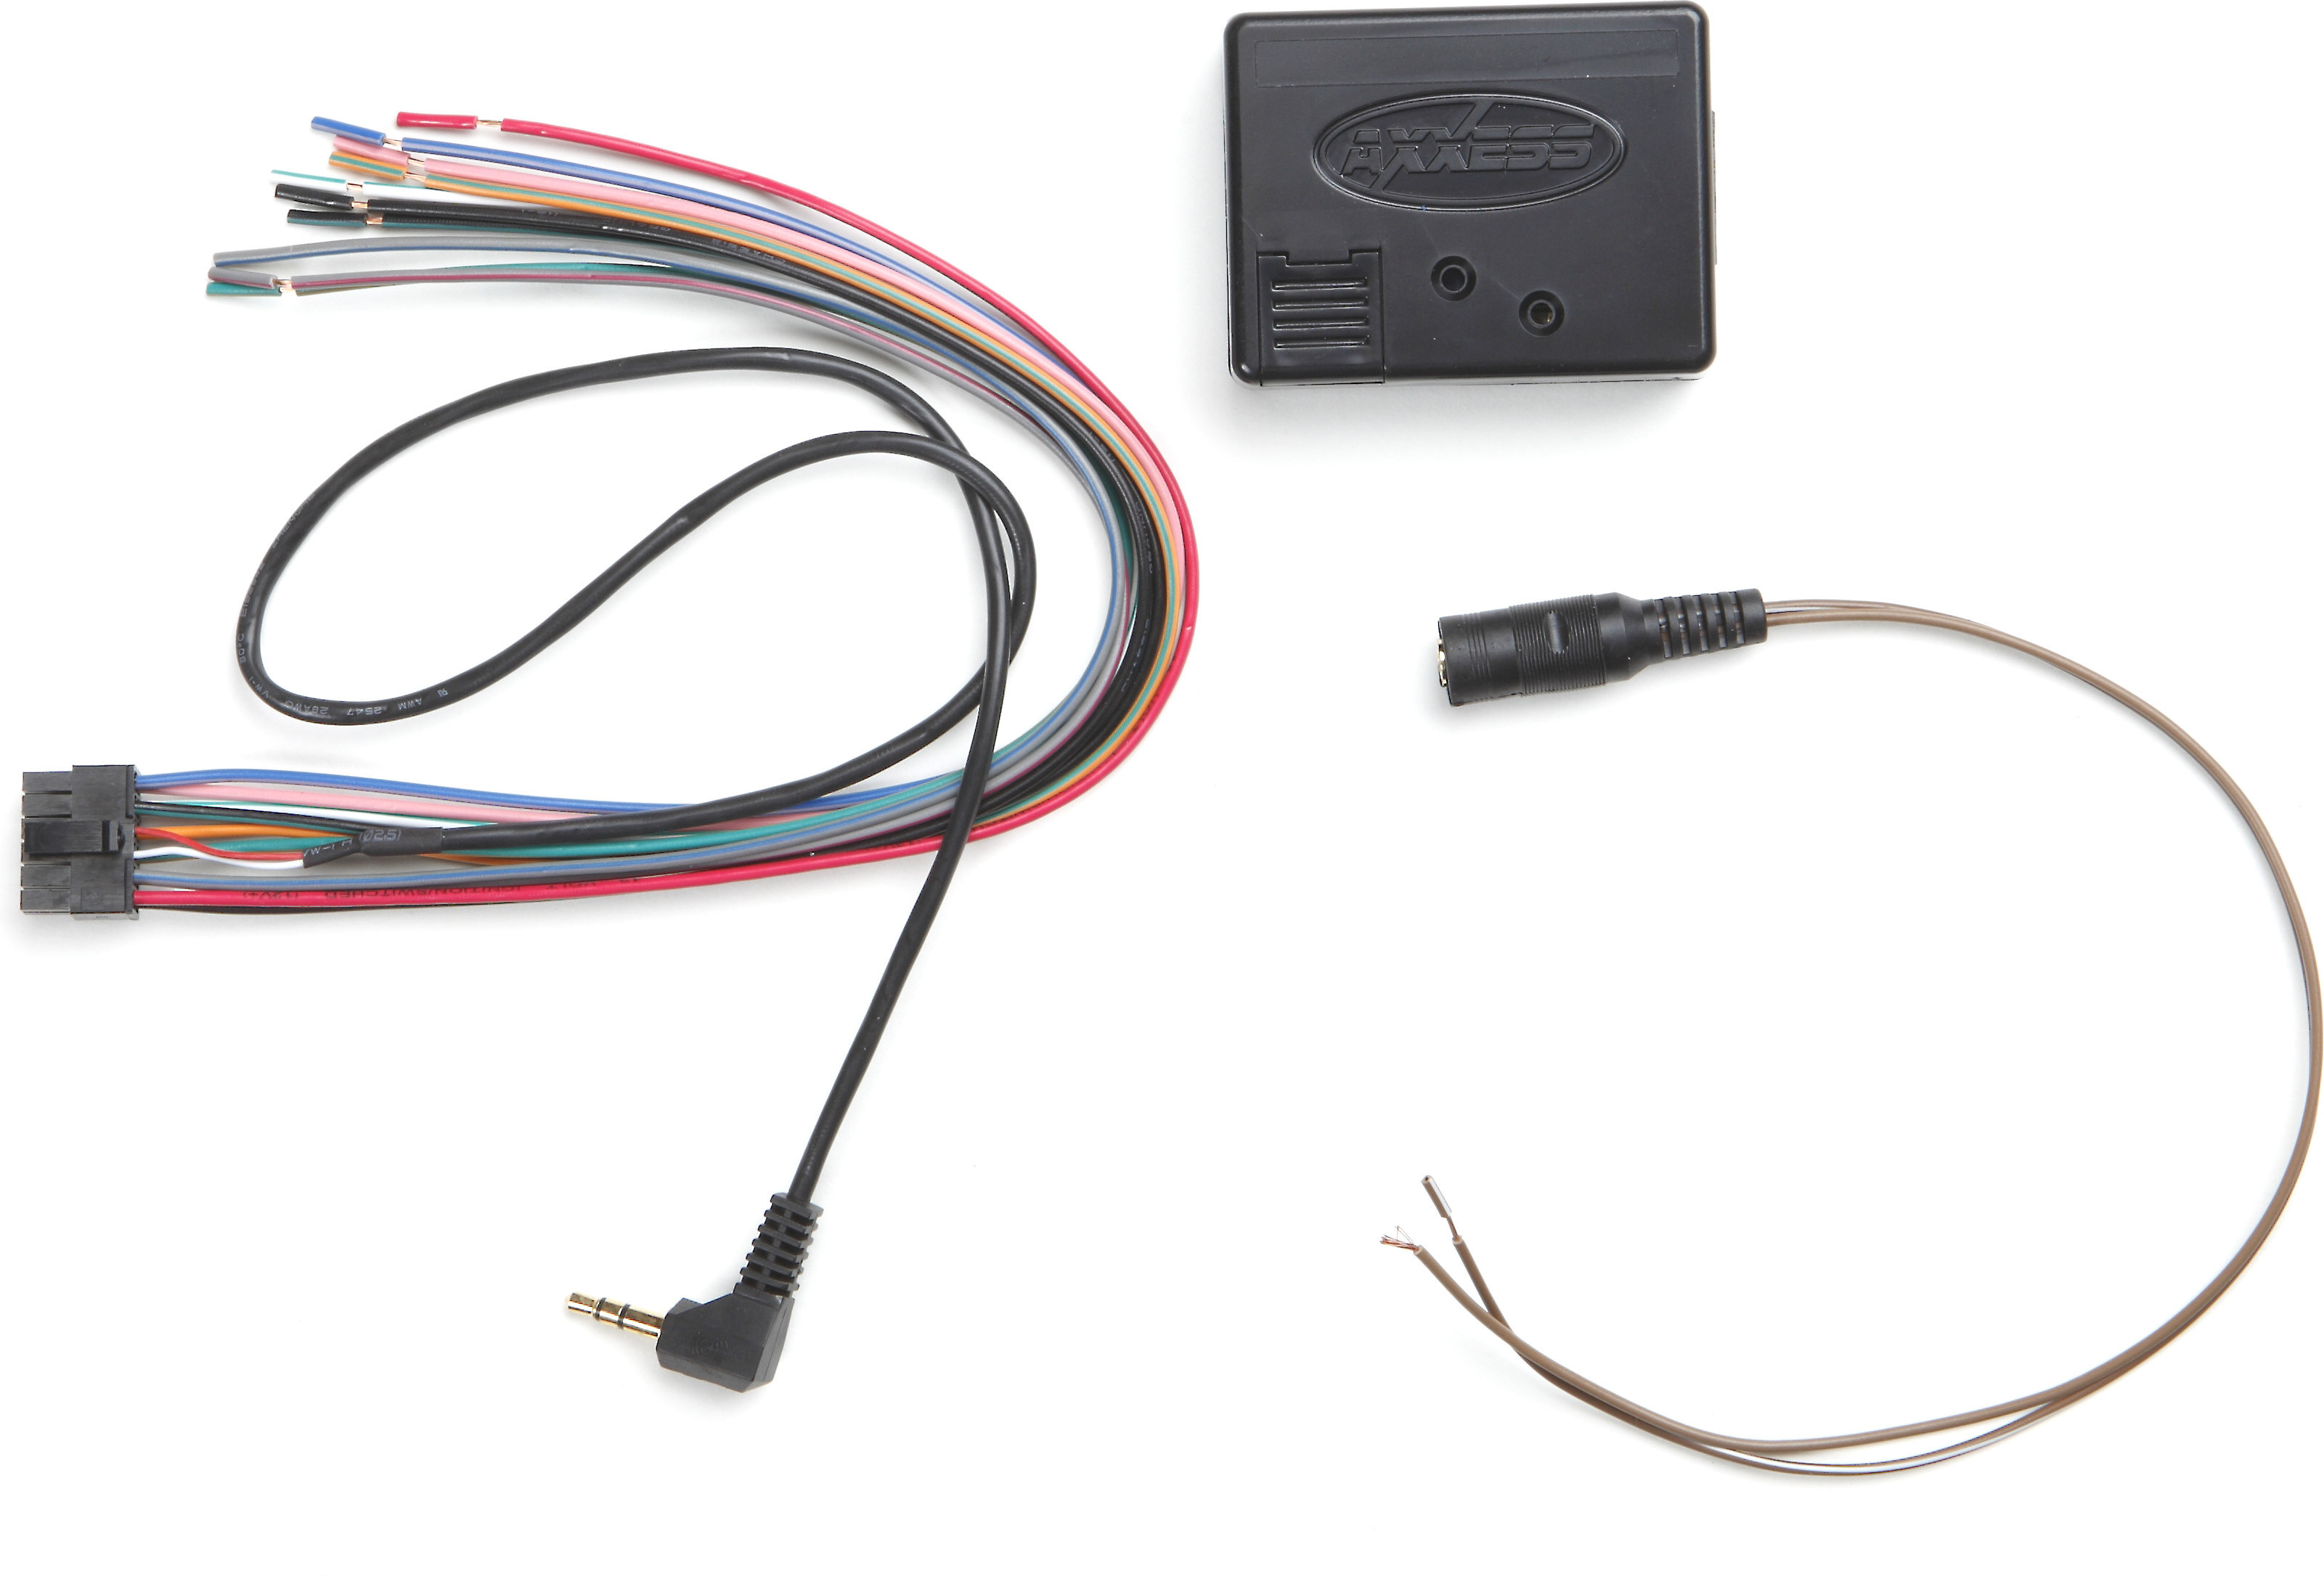 Peachy Axxess Aswc 1 Steering Wheel Control Adapter Connects Your Cars Wiring Cloud Oideiuggs Outletorg